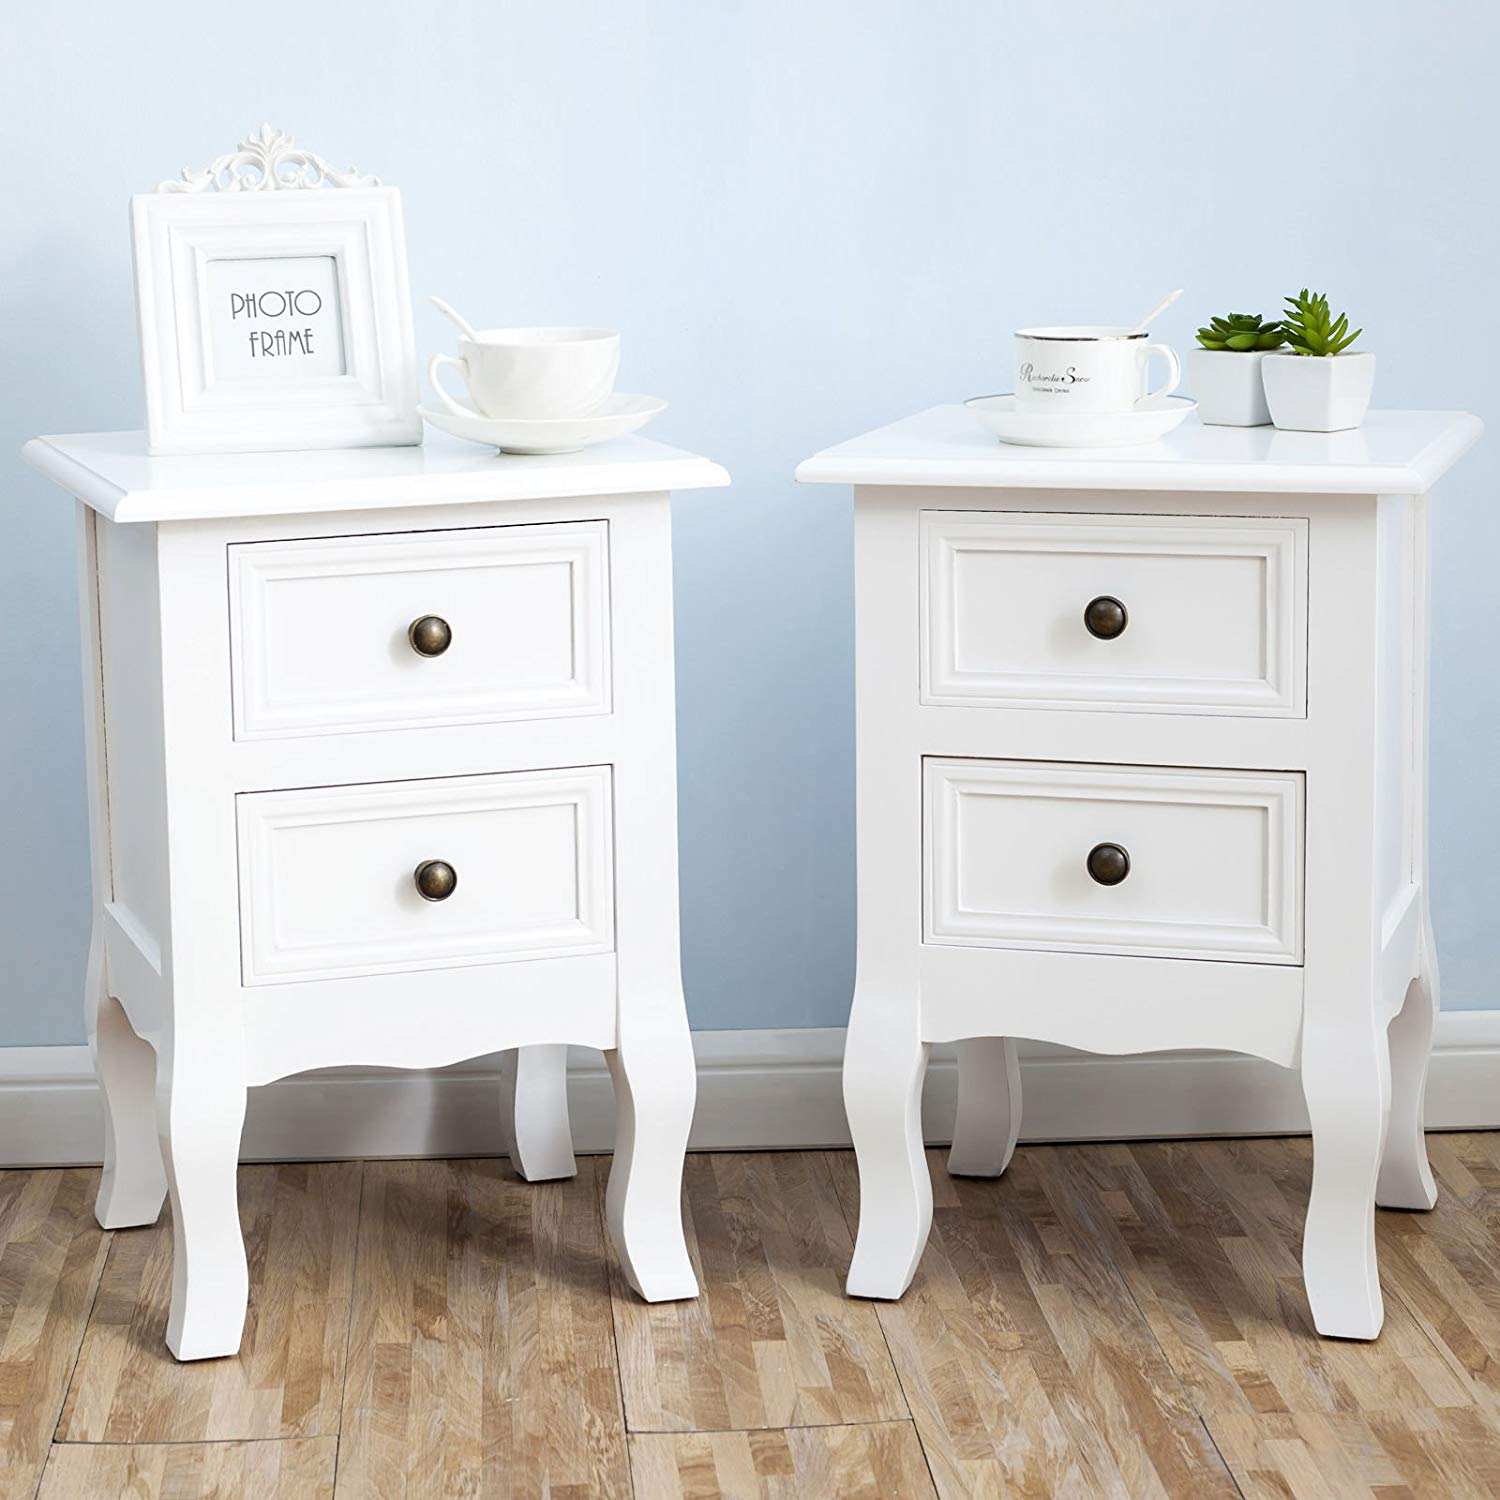 white nightstand set bedside end table pair shabby bedroom furniture tables chick kitchen dining liberty room chairs kmart sport shoes mirror side ikea modern dog cage baby